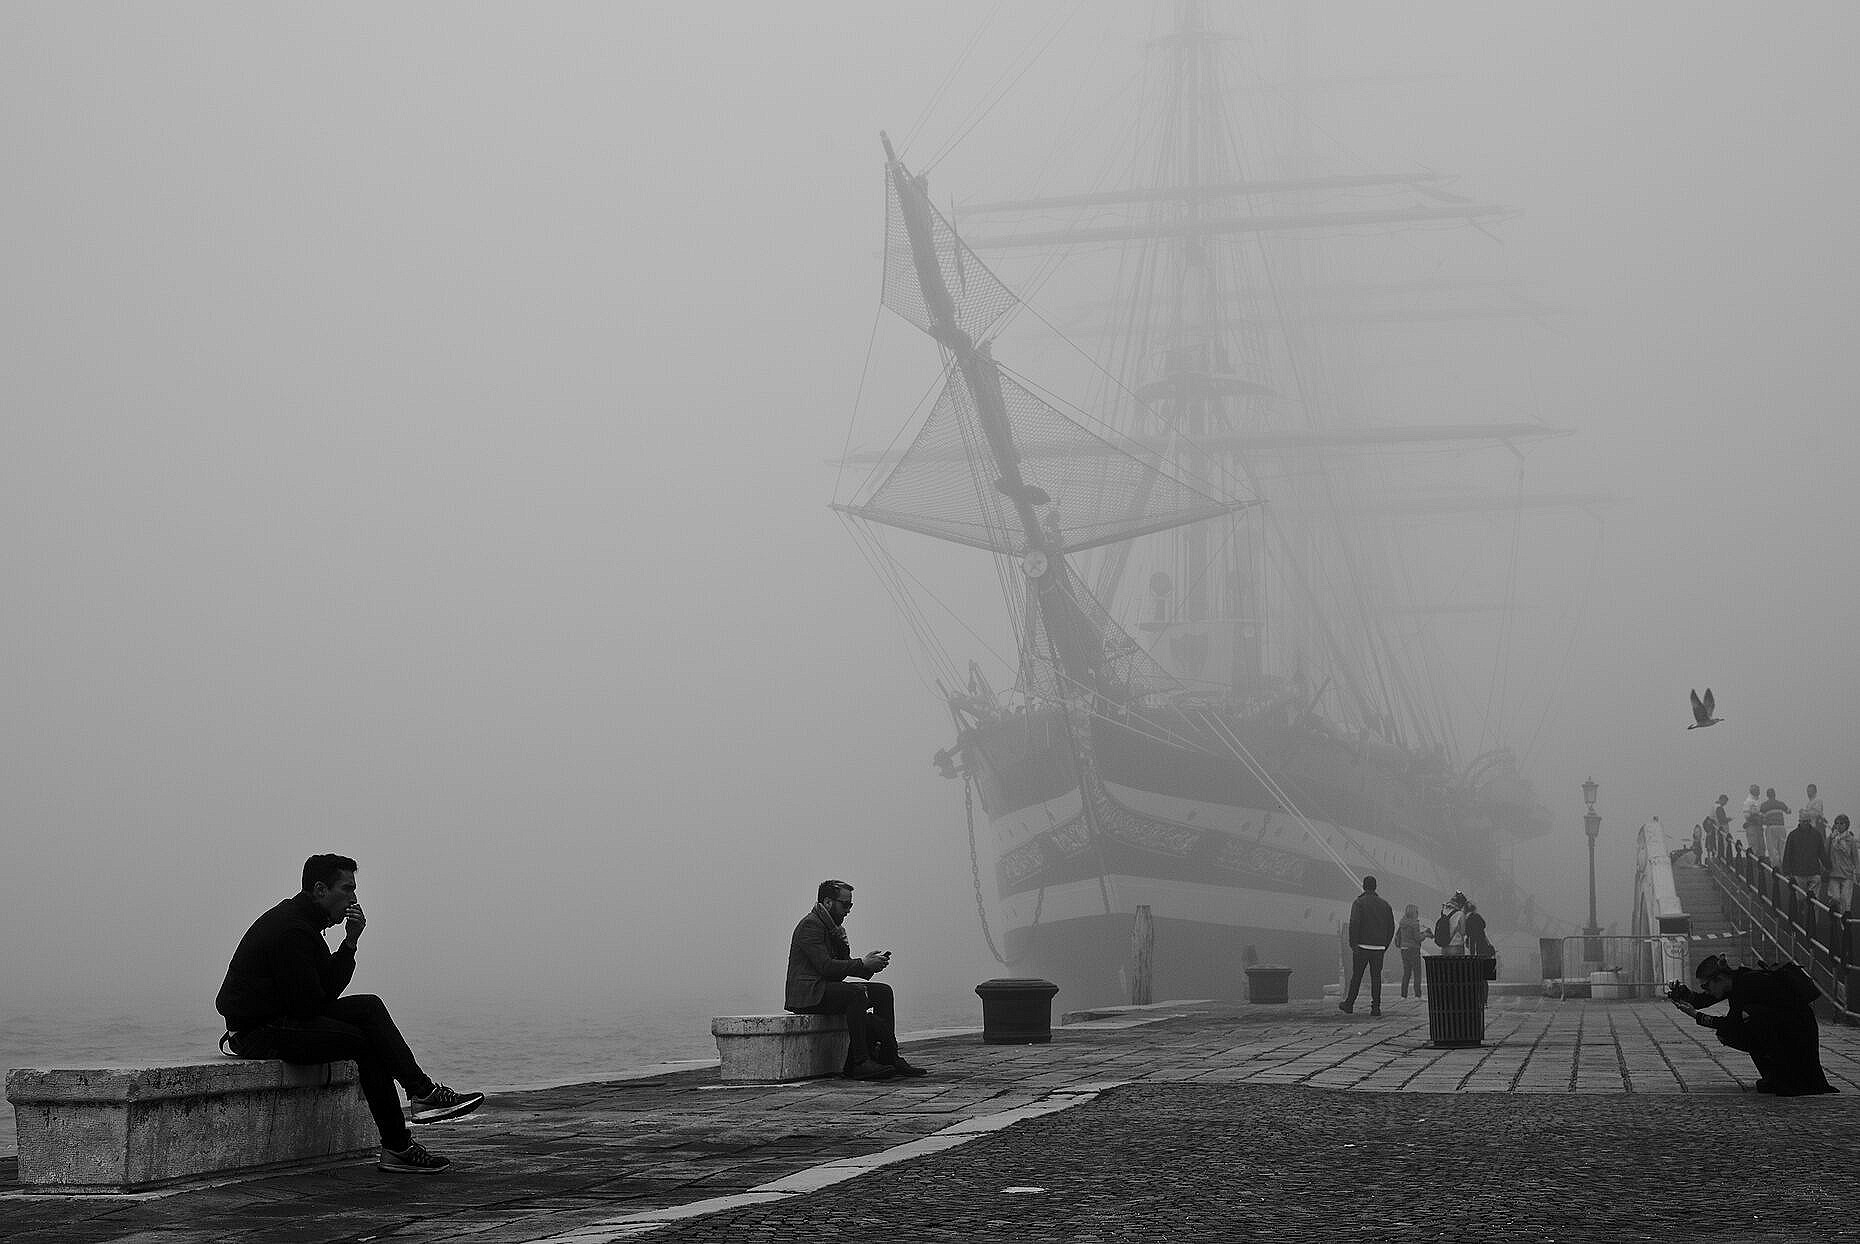 Tall ship Amerigo Vespucci in Venice on a foggy day, with people in the foreground